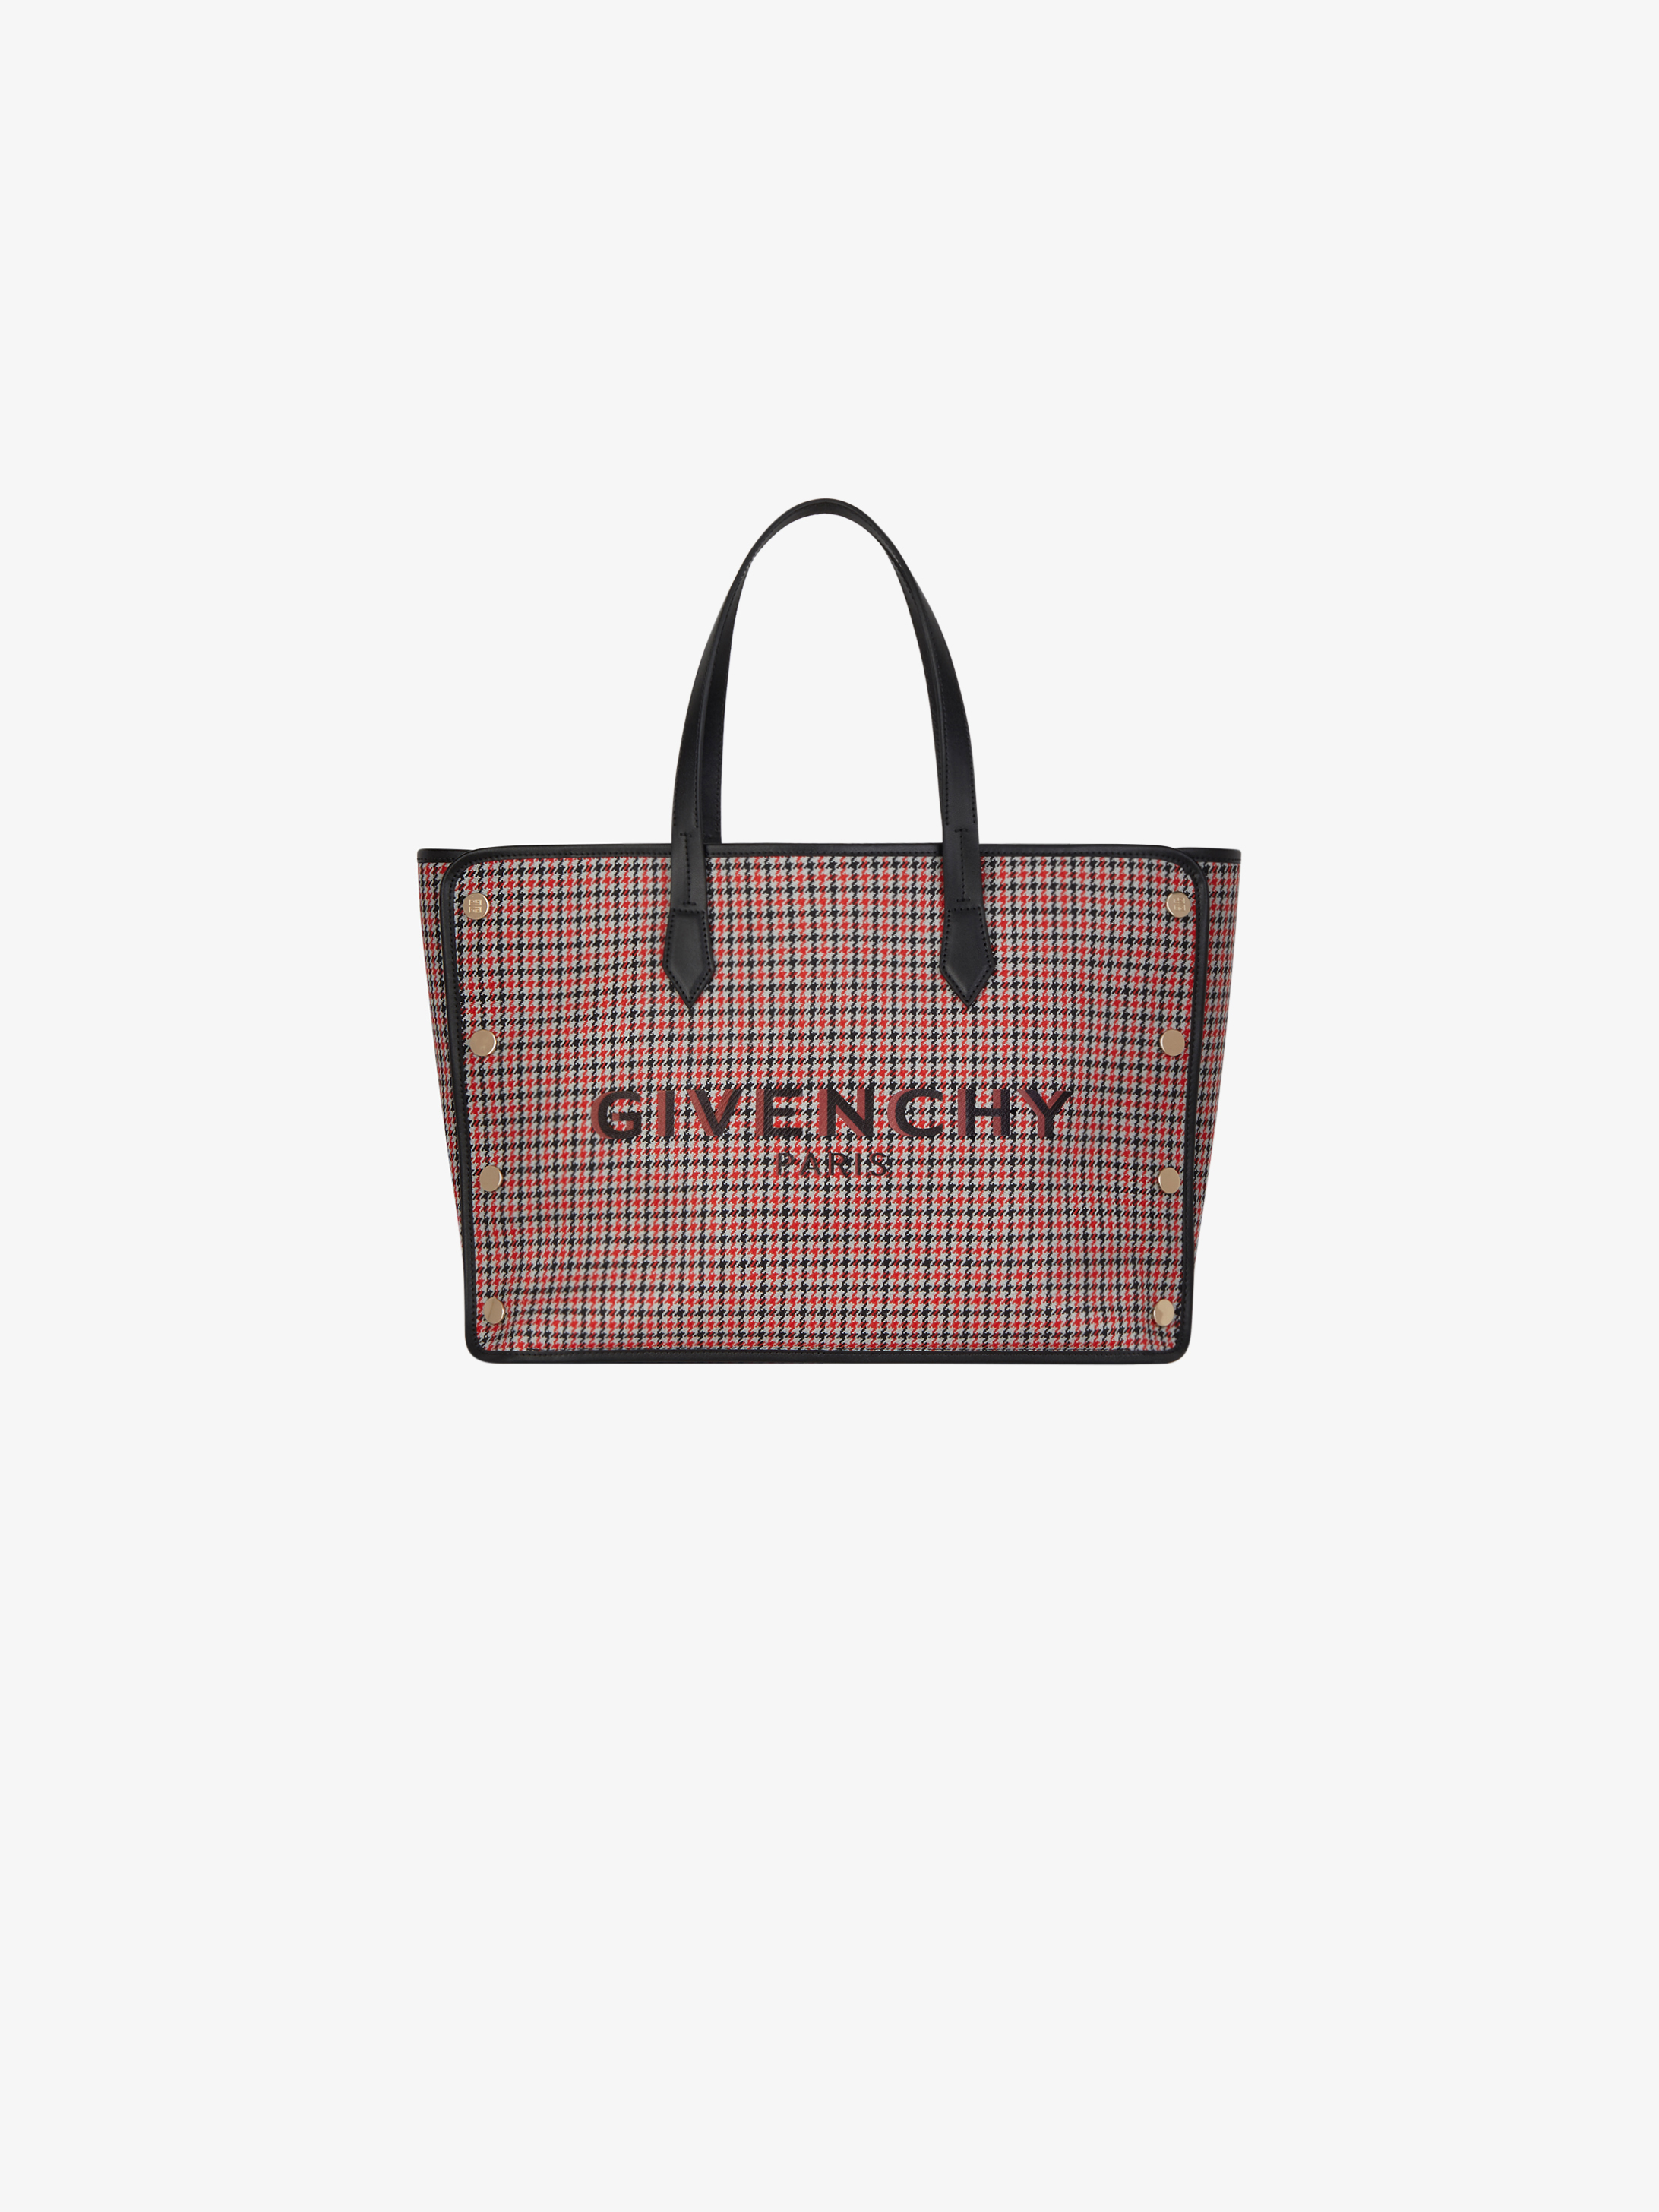 Medium Bond shopper in houndstooth wool